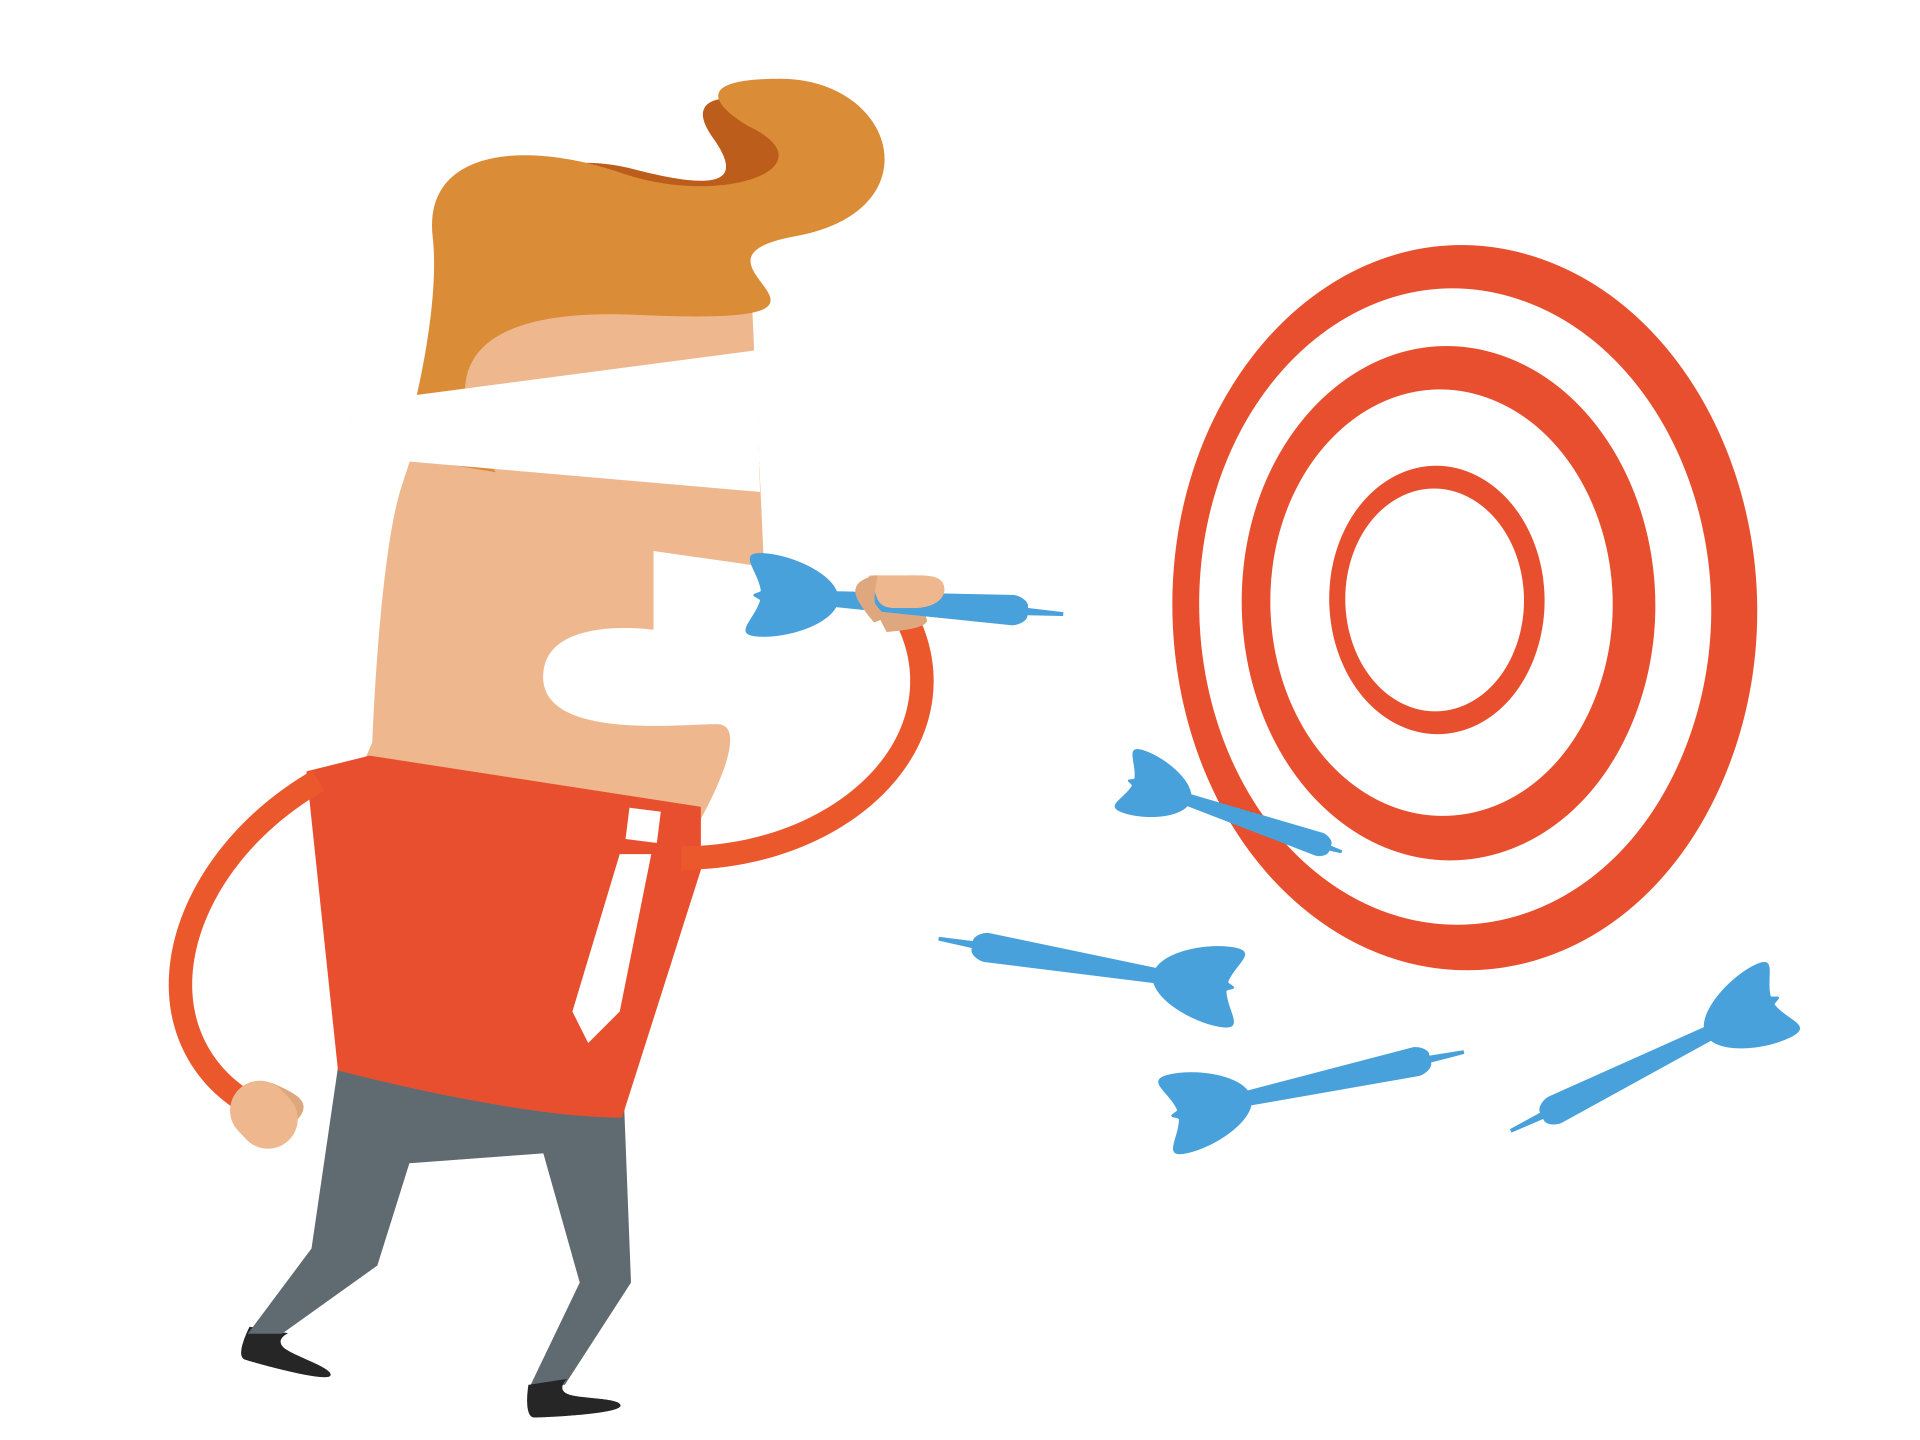 graphic of blindfolded man throwing darts, sales people aiming to sell